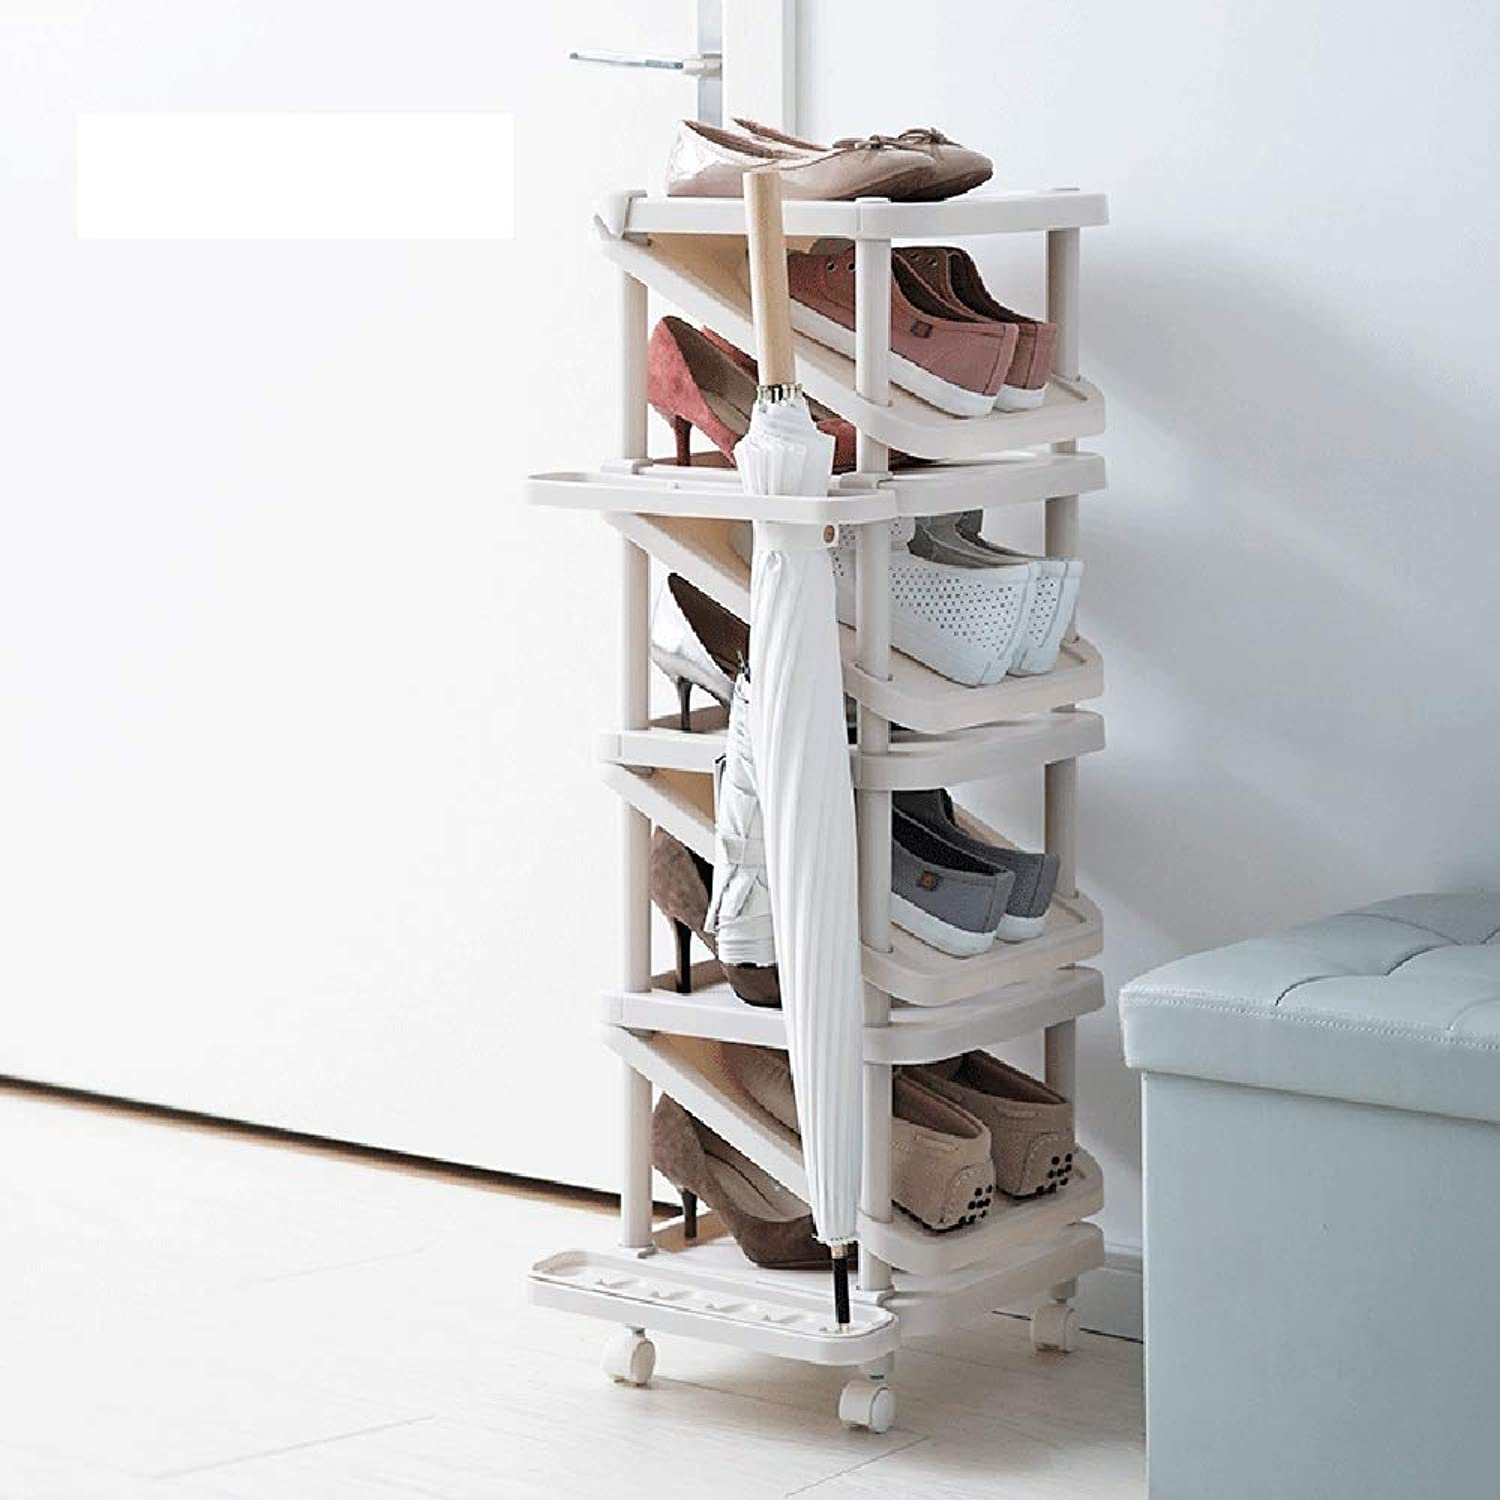 Umbrella Stand, Plastic Two-Way shoes Rack with Umbrella Stand Door Finishing shoes Storage Shelf Porch Shelf Beige